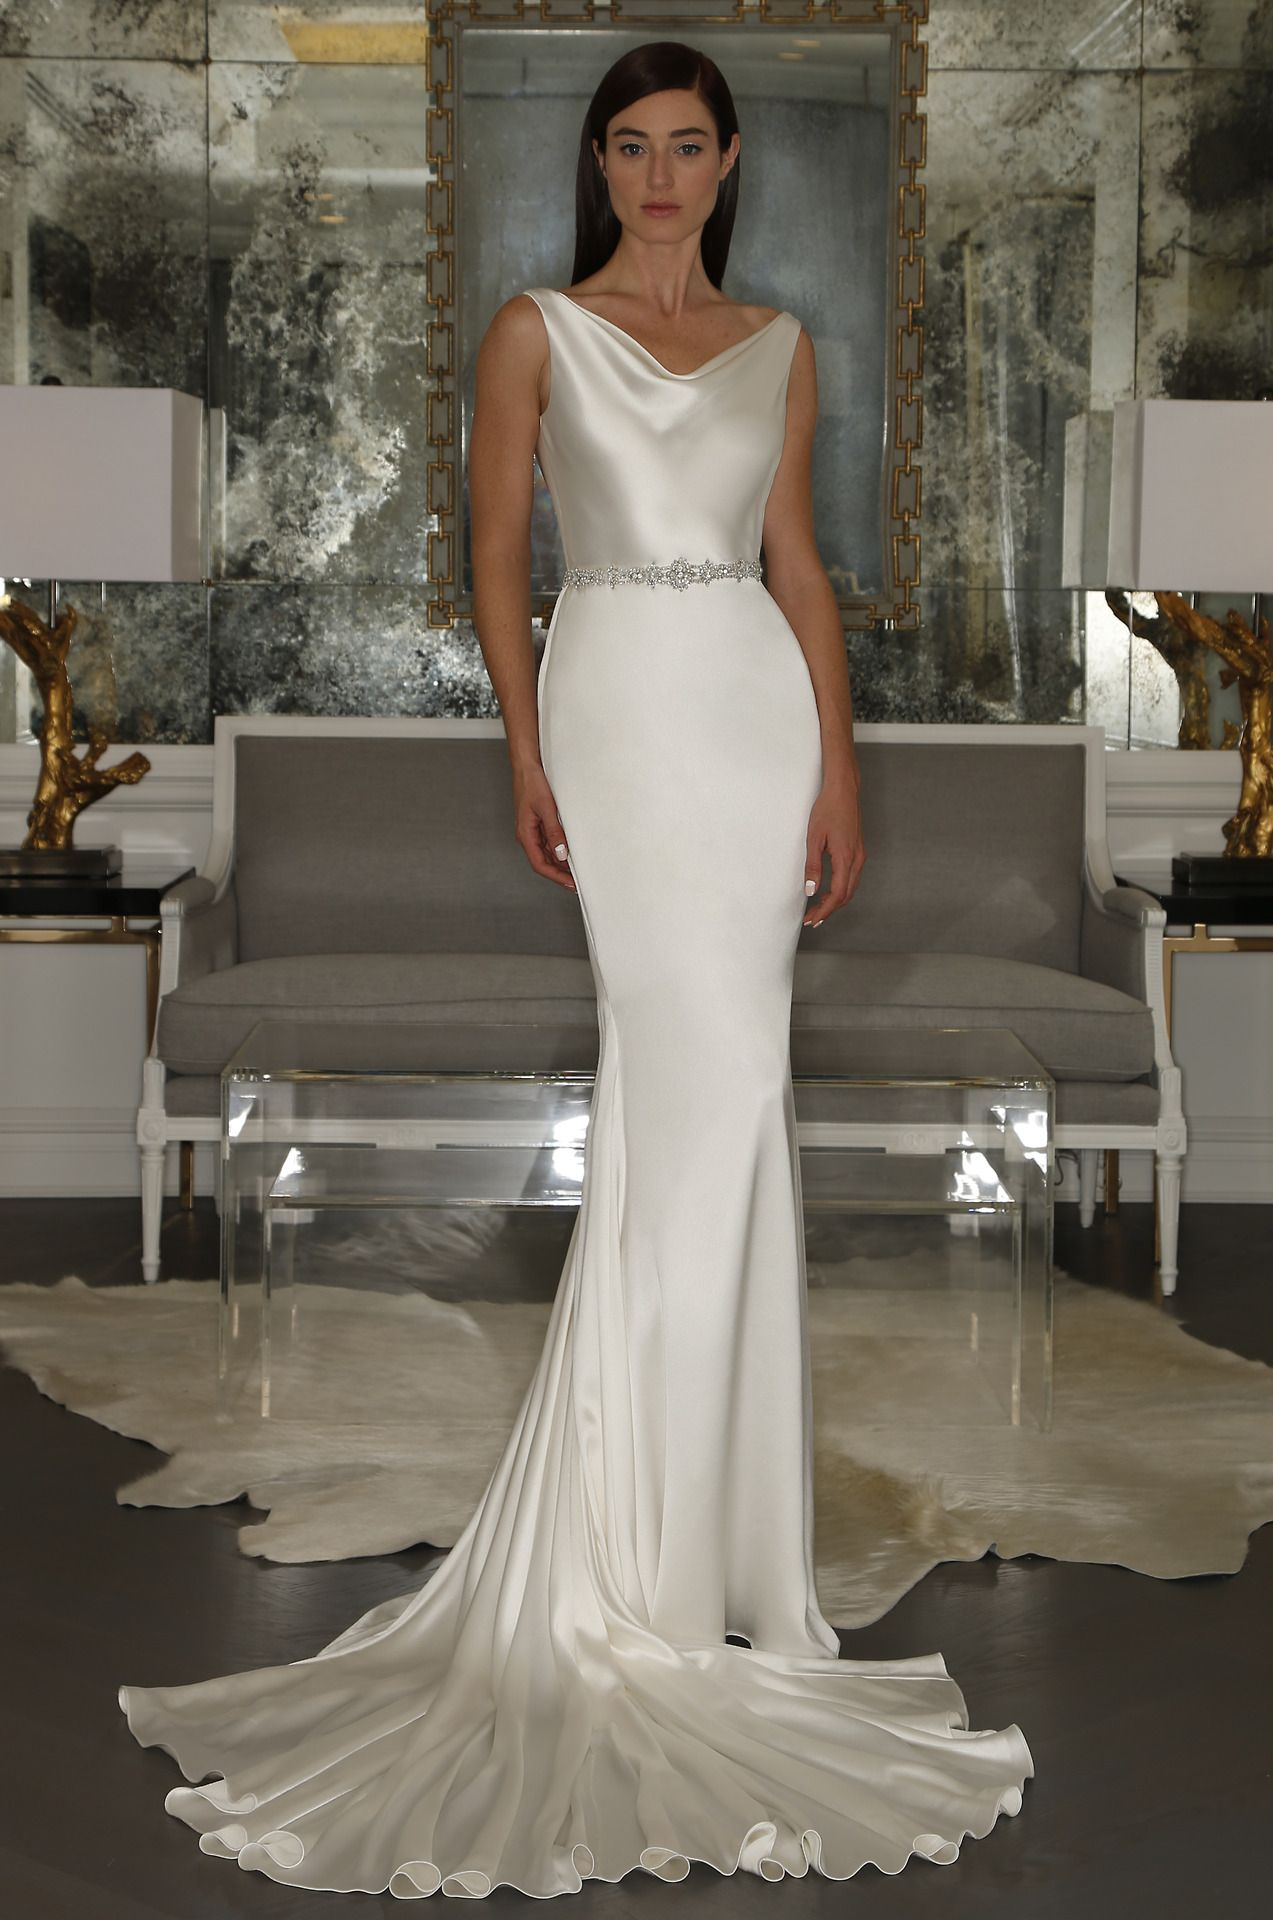 1930s style wedding dresses  Pin by Valerie Guardado on Weddings  Pinterest  Couture bridal